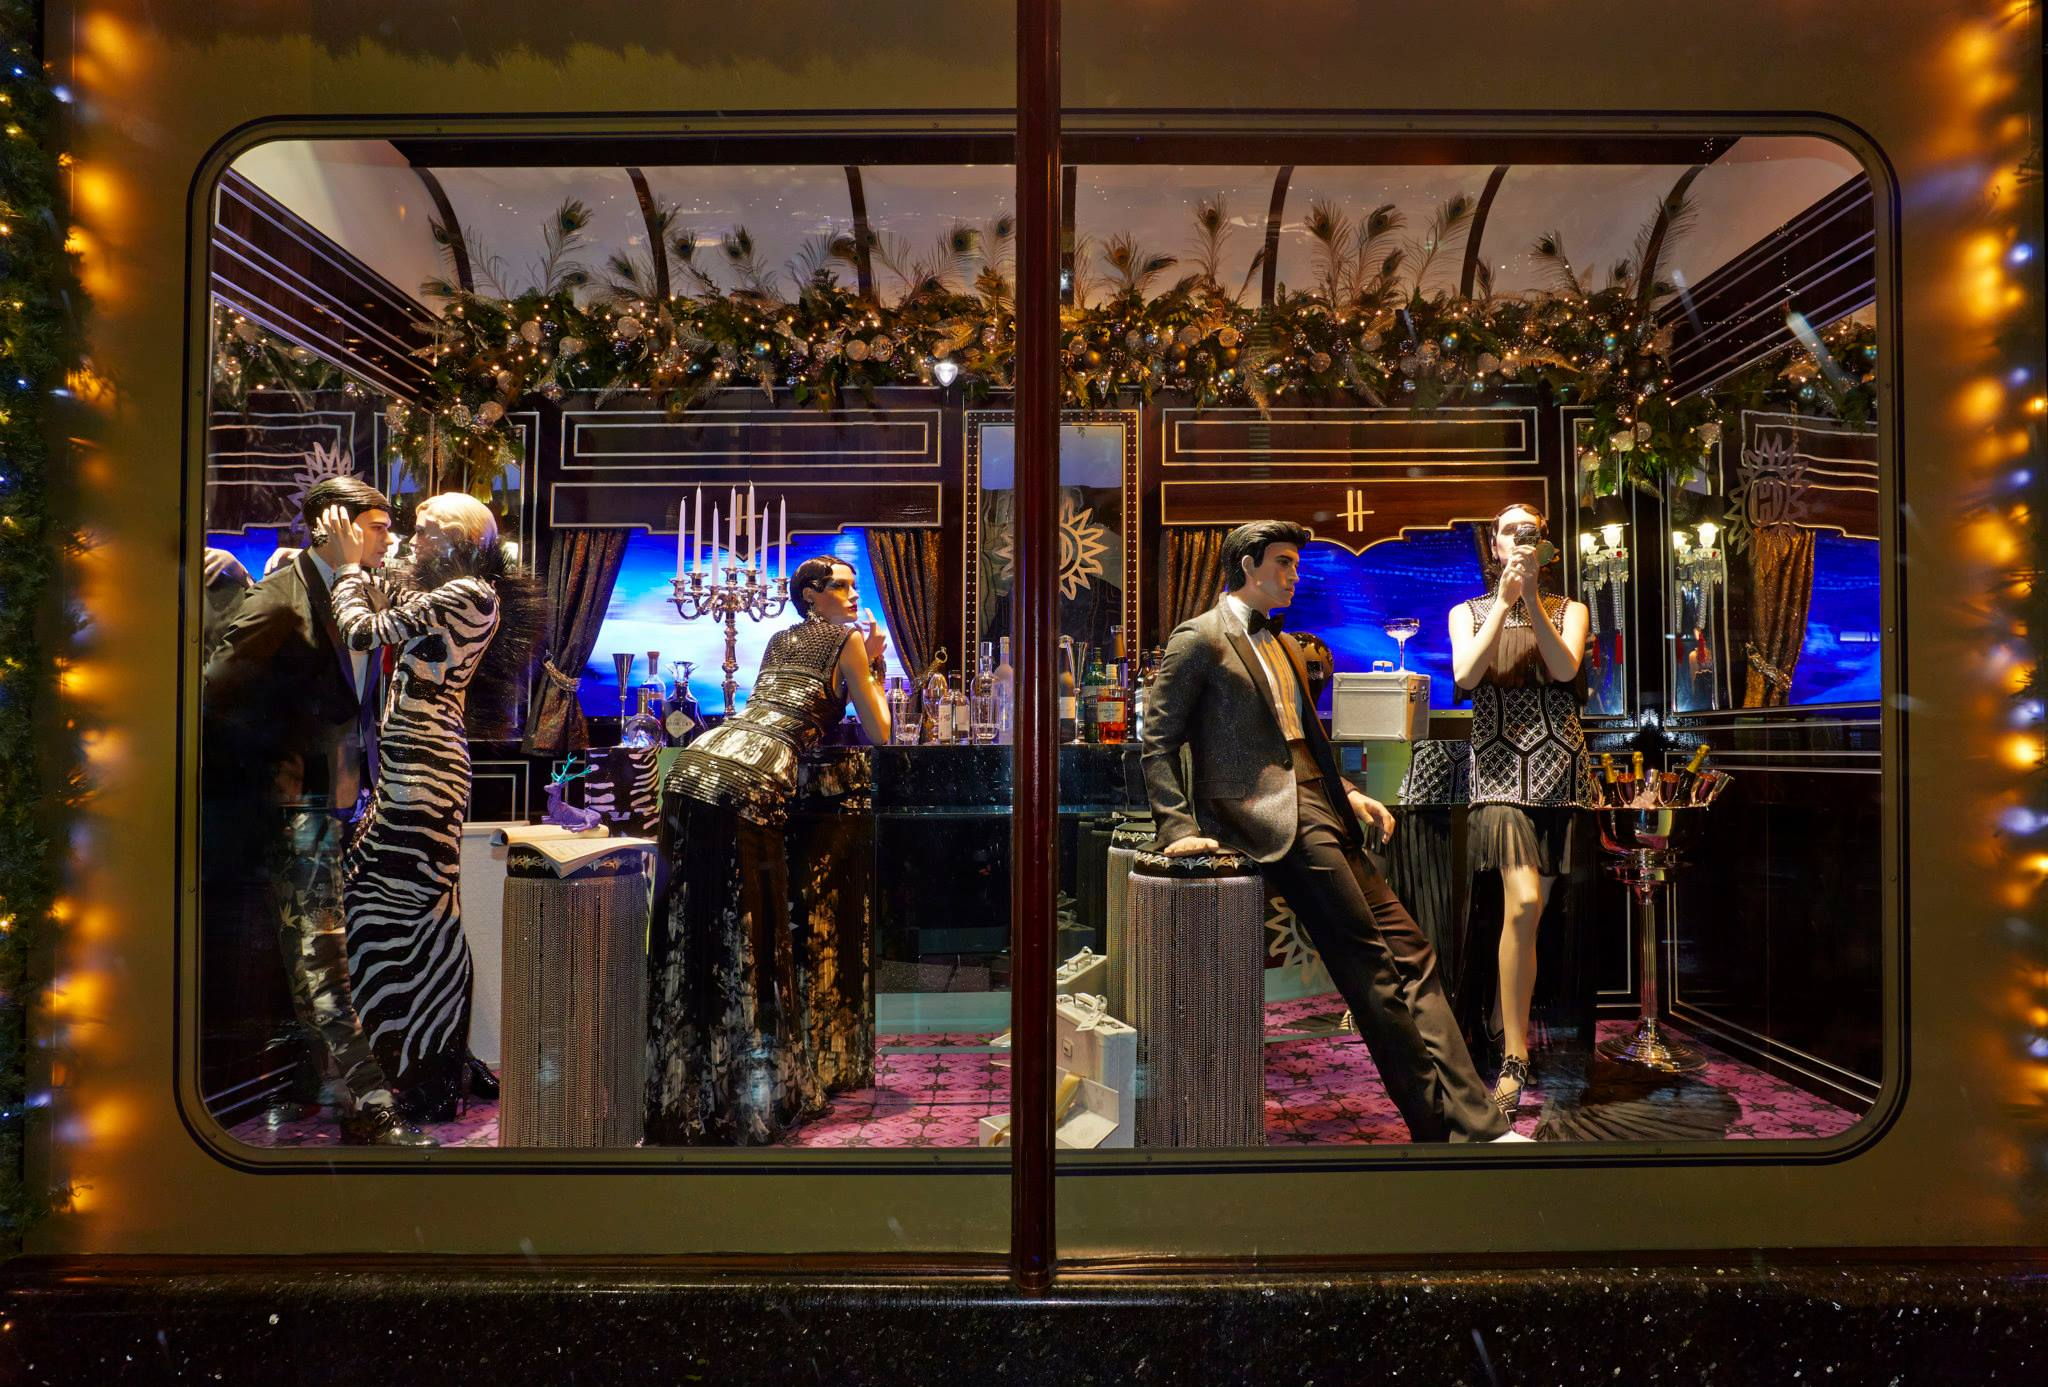 The harrods express christmas window display 2013 best for Boutique deco